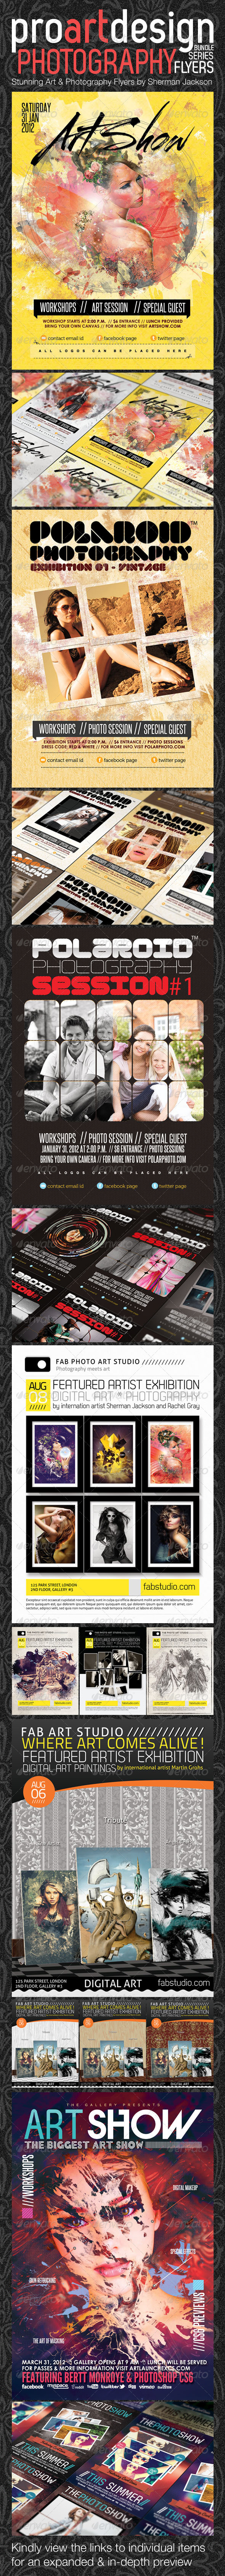 GraphicRiver ProART Photography Bundle PSD Templates 2798734